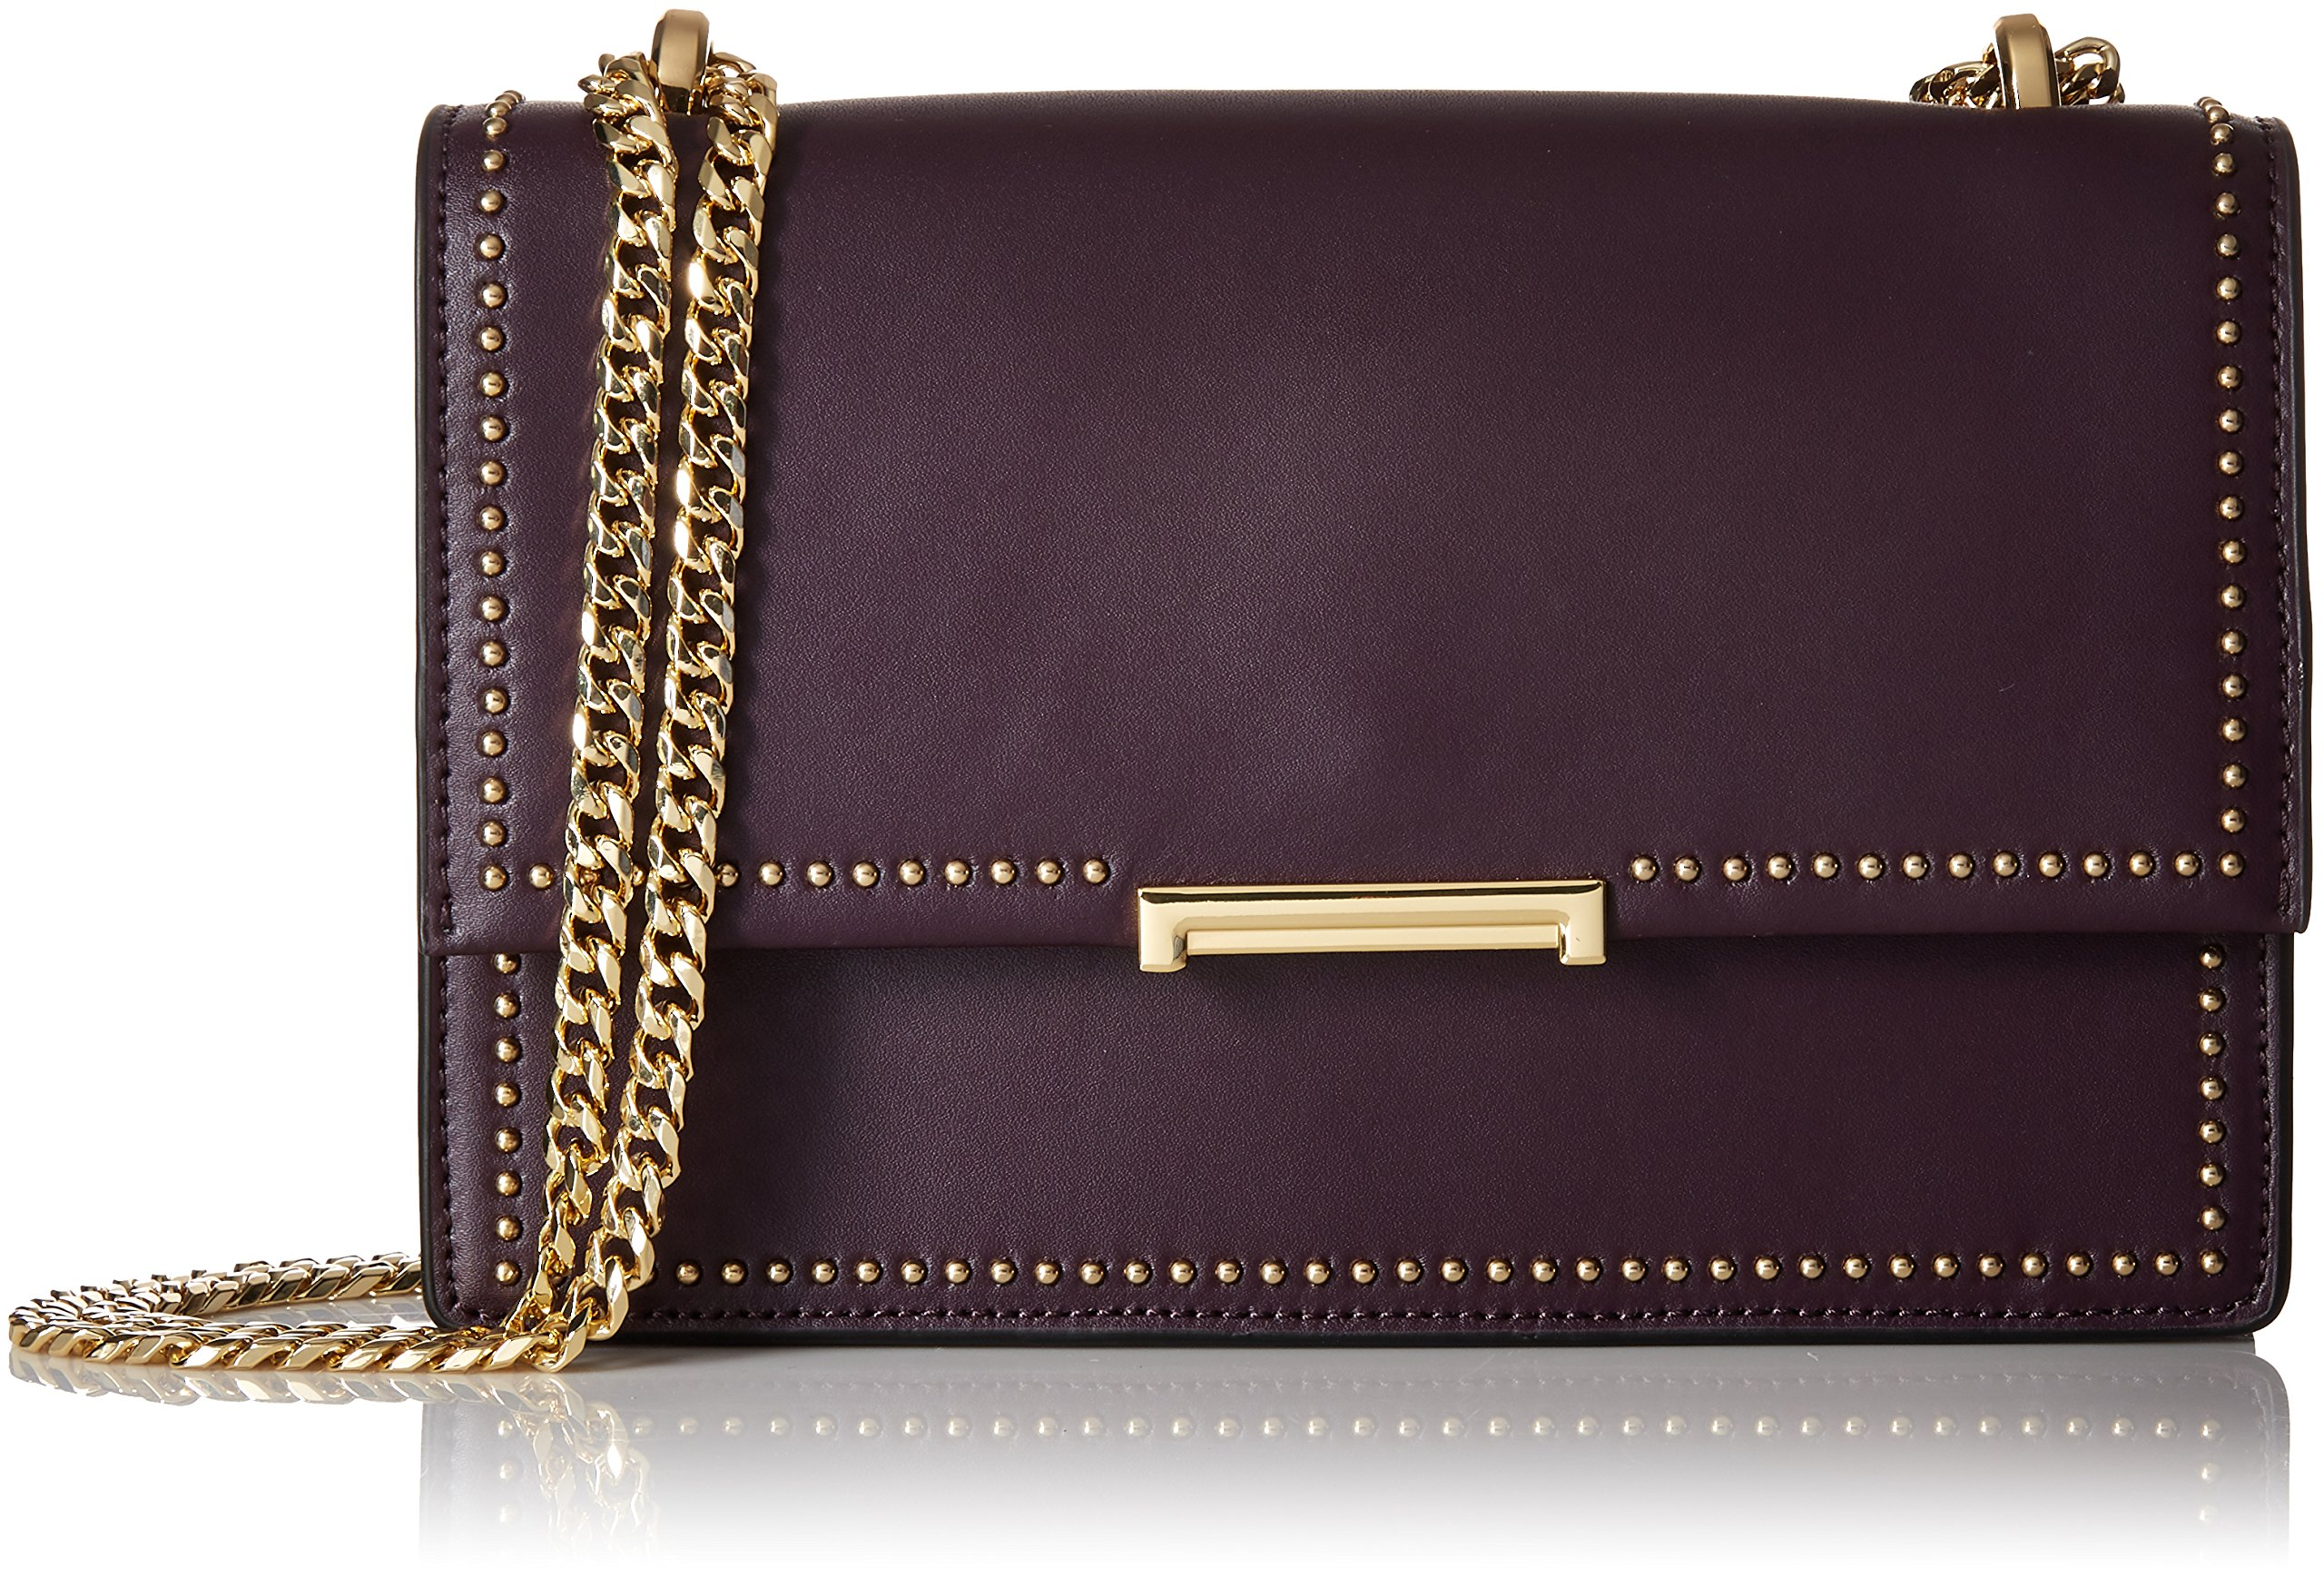 Ivanka Trump Mara Cocktail Bag Plum, Plum Pink Studs by Ivanka Trump